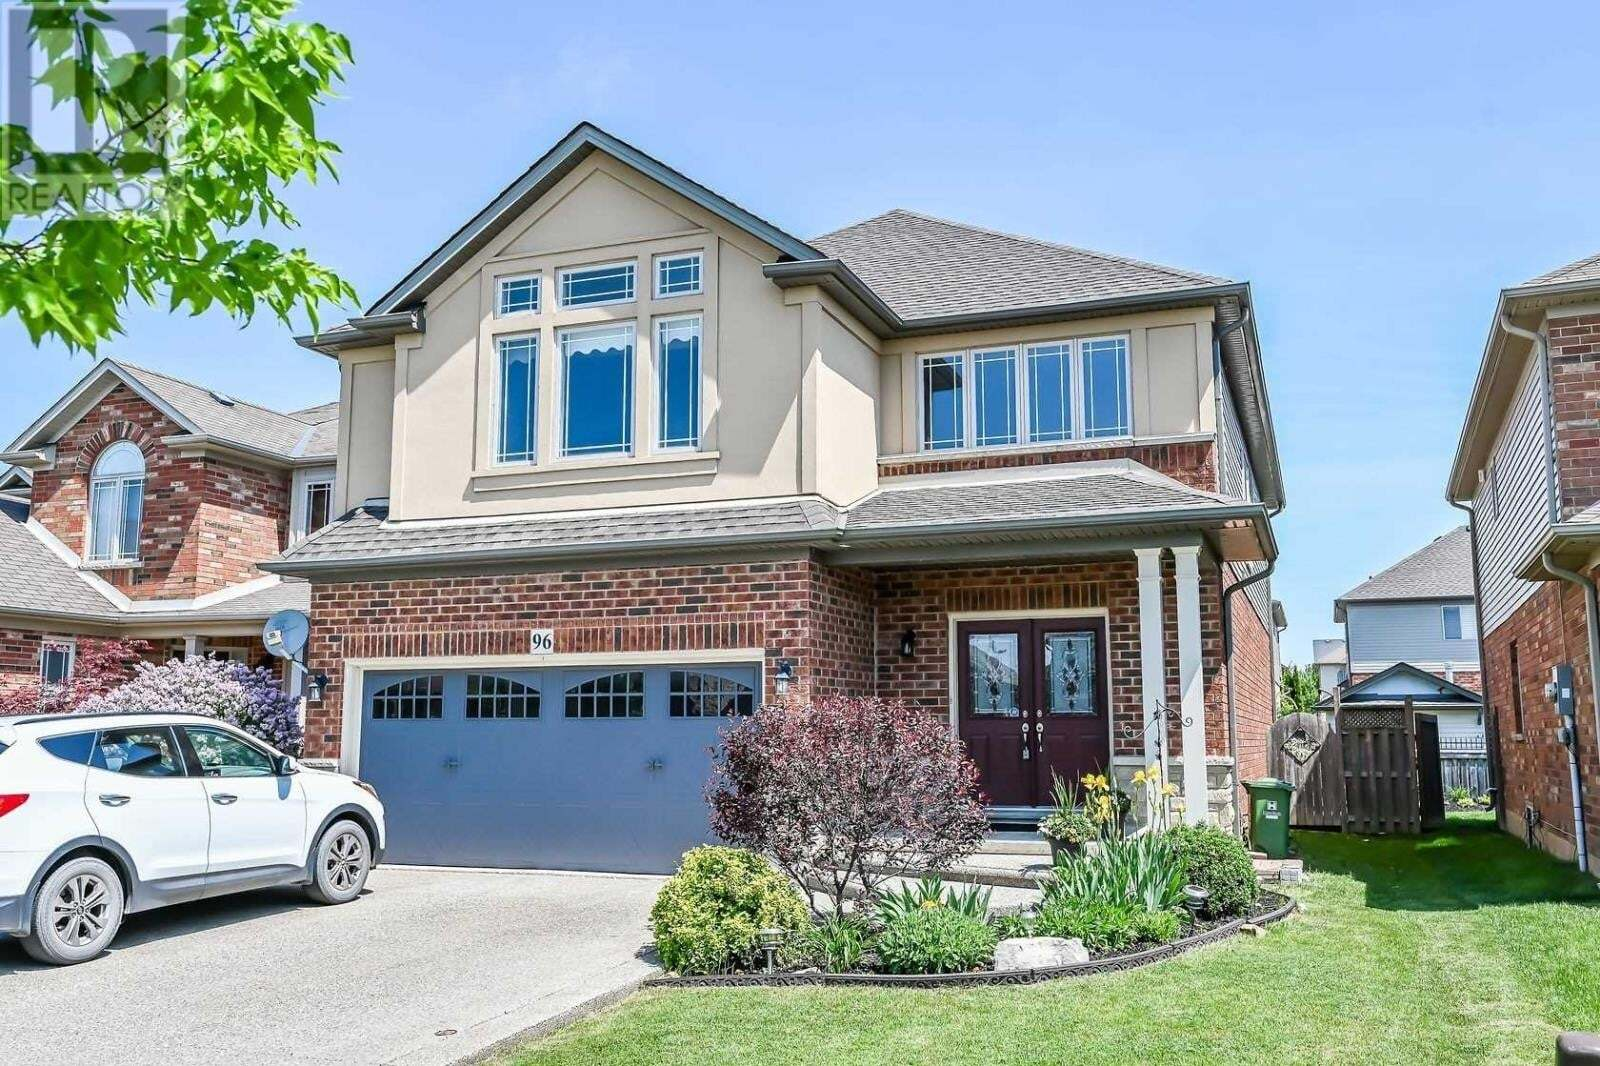 House for sale at 96 Windwood Dr Hamilton Ontario - MLS: X4790895